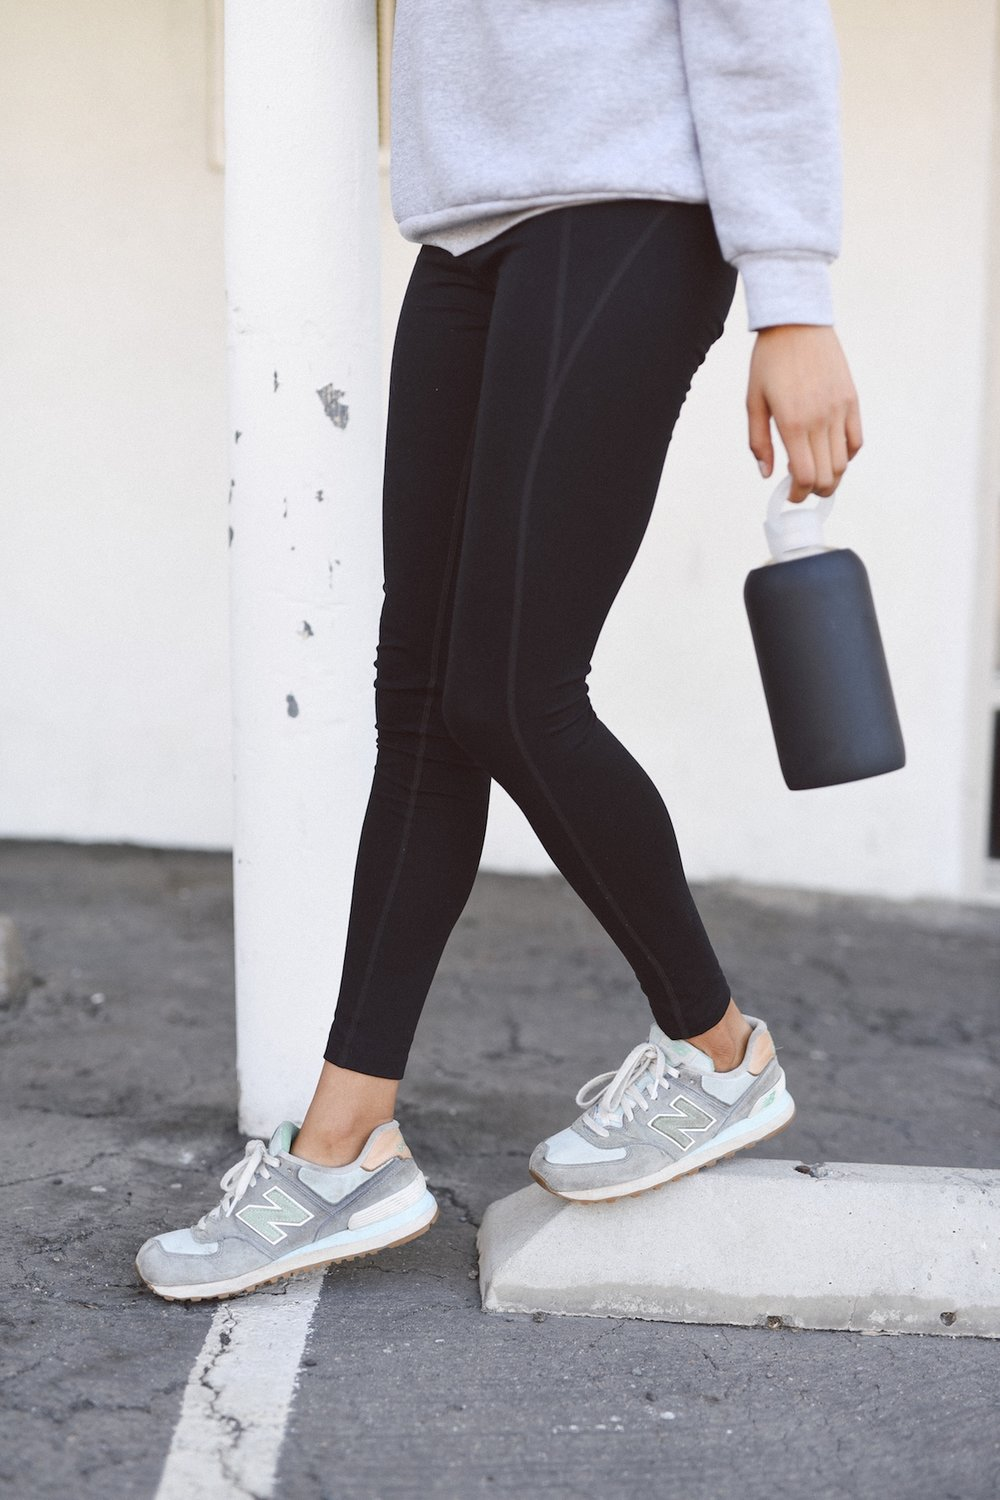 Girlfriend Collective black leggings for the perfect athleisure look // A Week Of Outfits With Jazmine Brown on The Good Trade